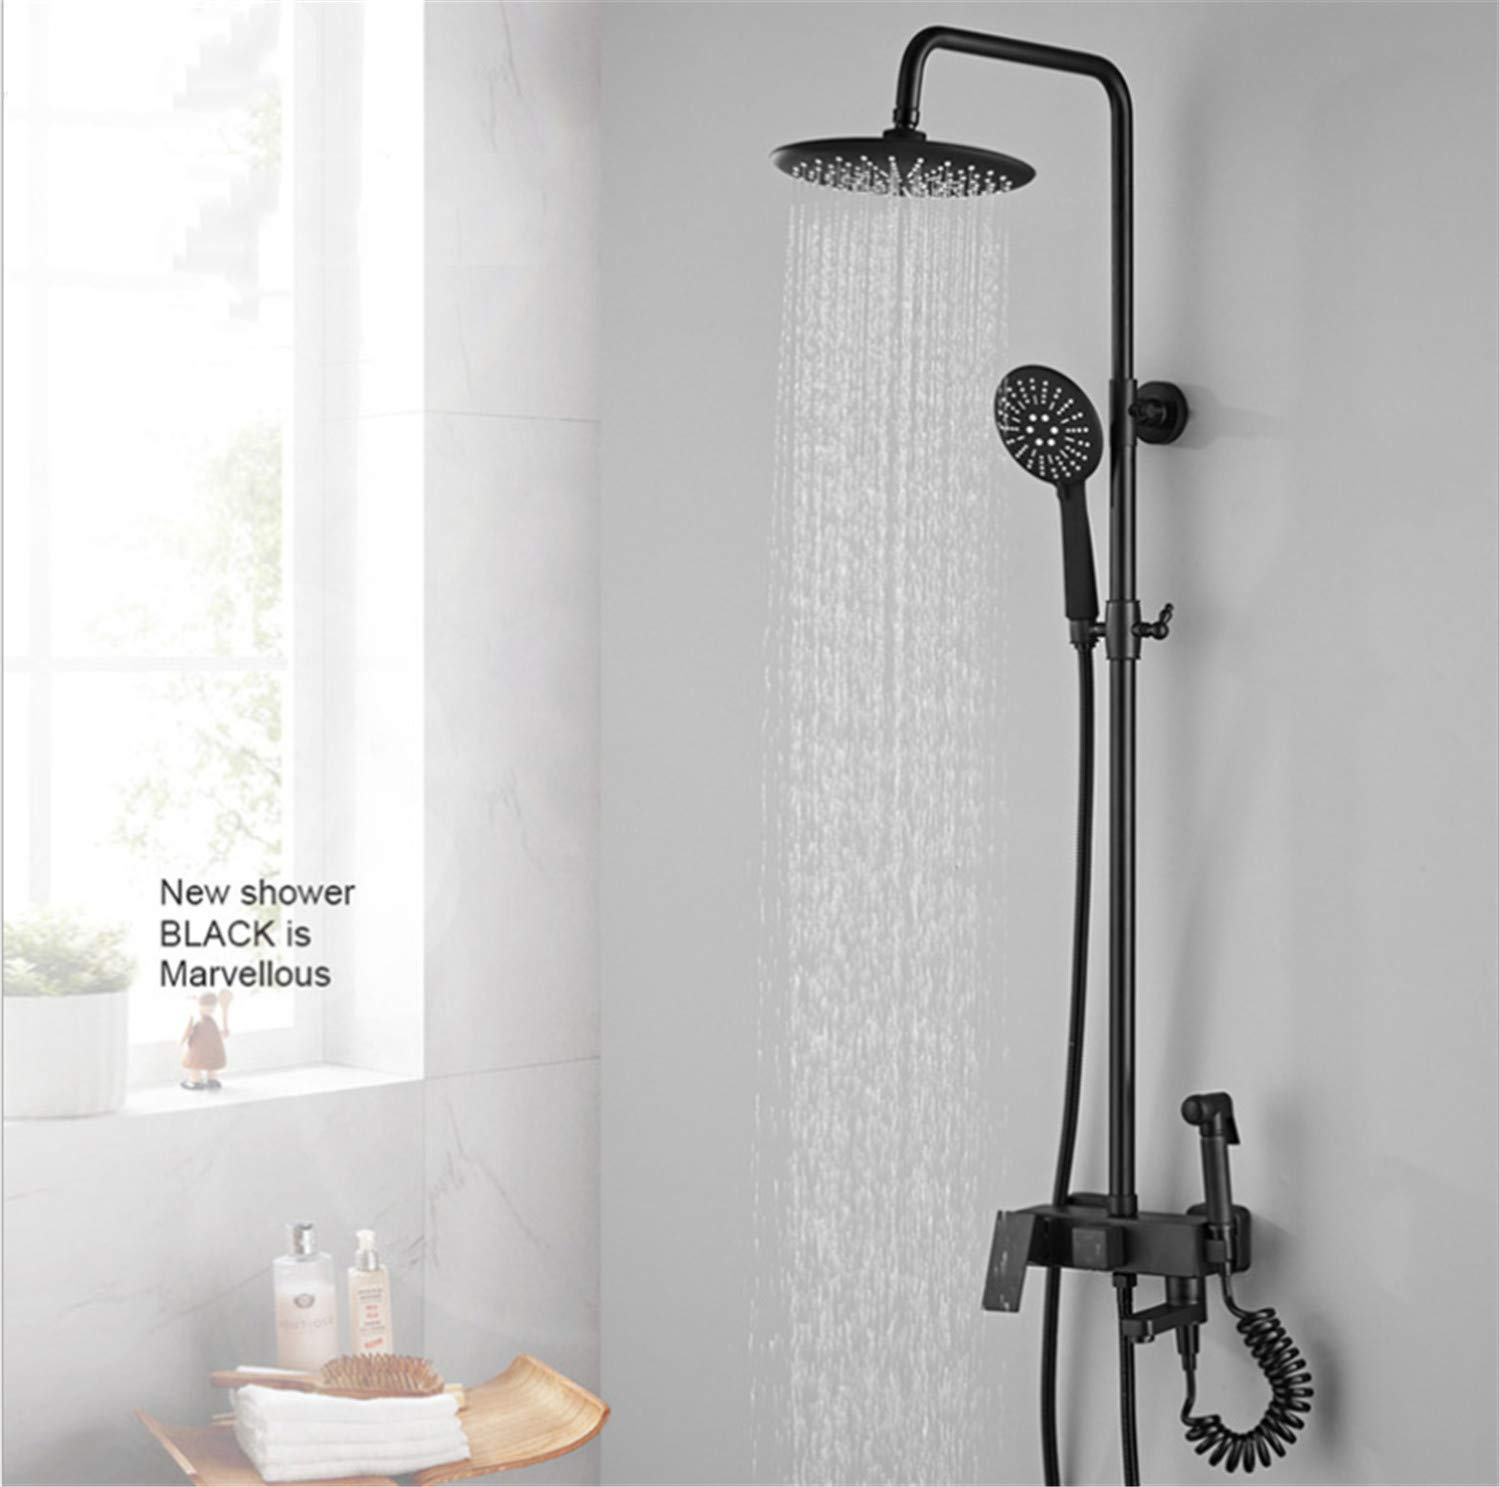 UNIQUE-F Shower Set Matte Black Antique Round Rain Head Handheld Nozzle Silicone Soft Head is Not Easy to Breed Bacteria Rust Wear Durable by UNIQUE-F (Image #4)